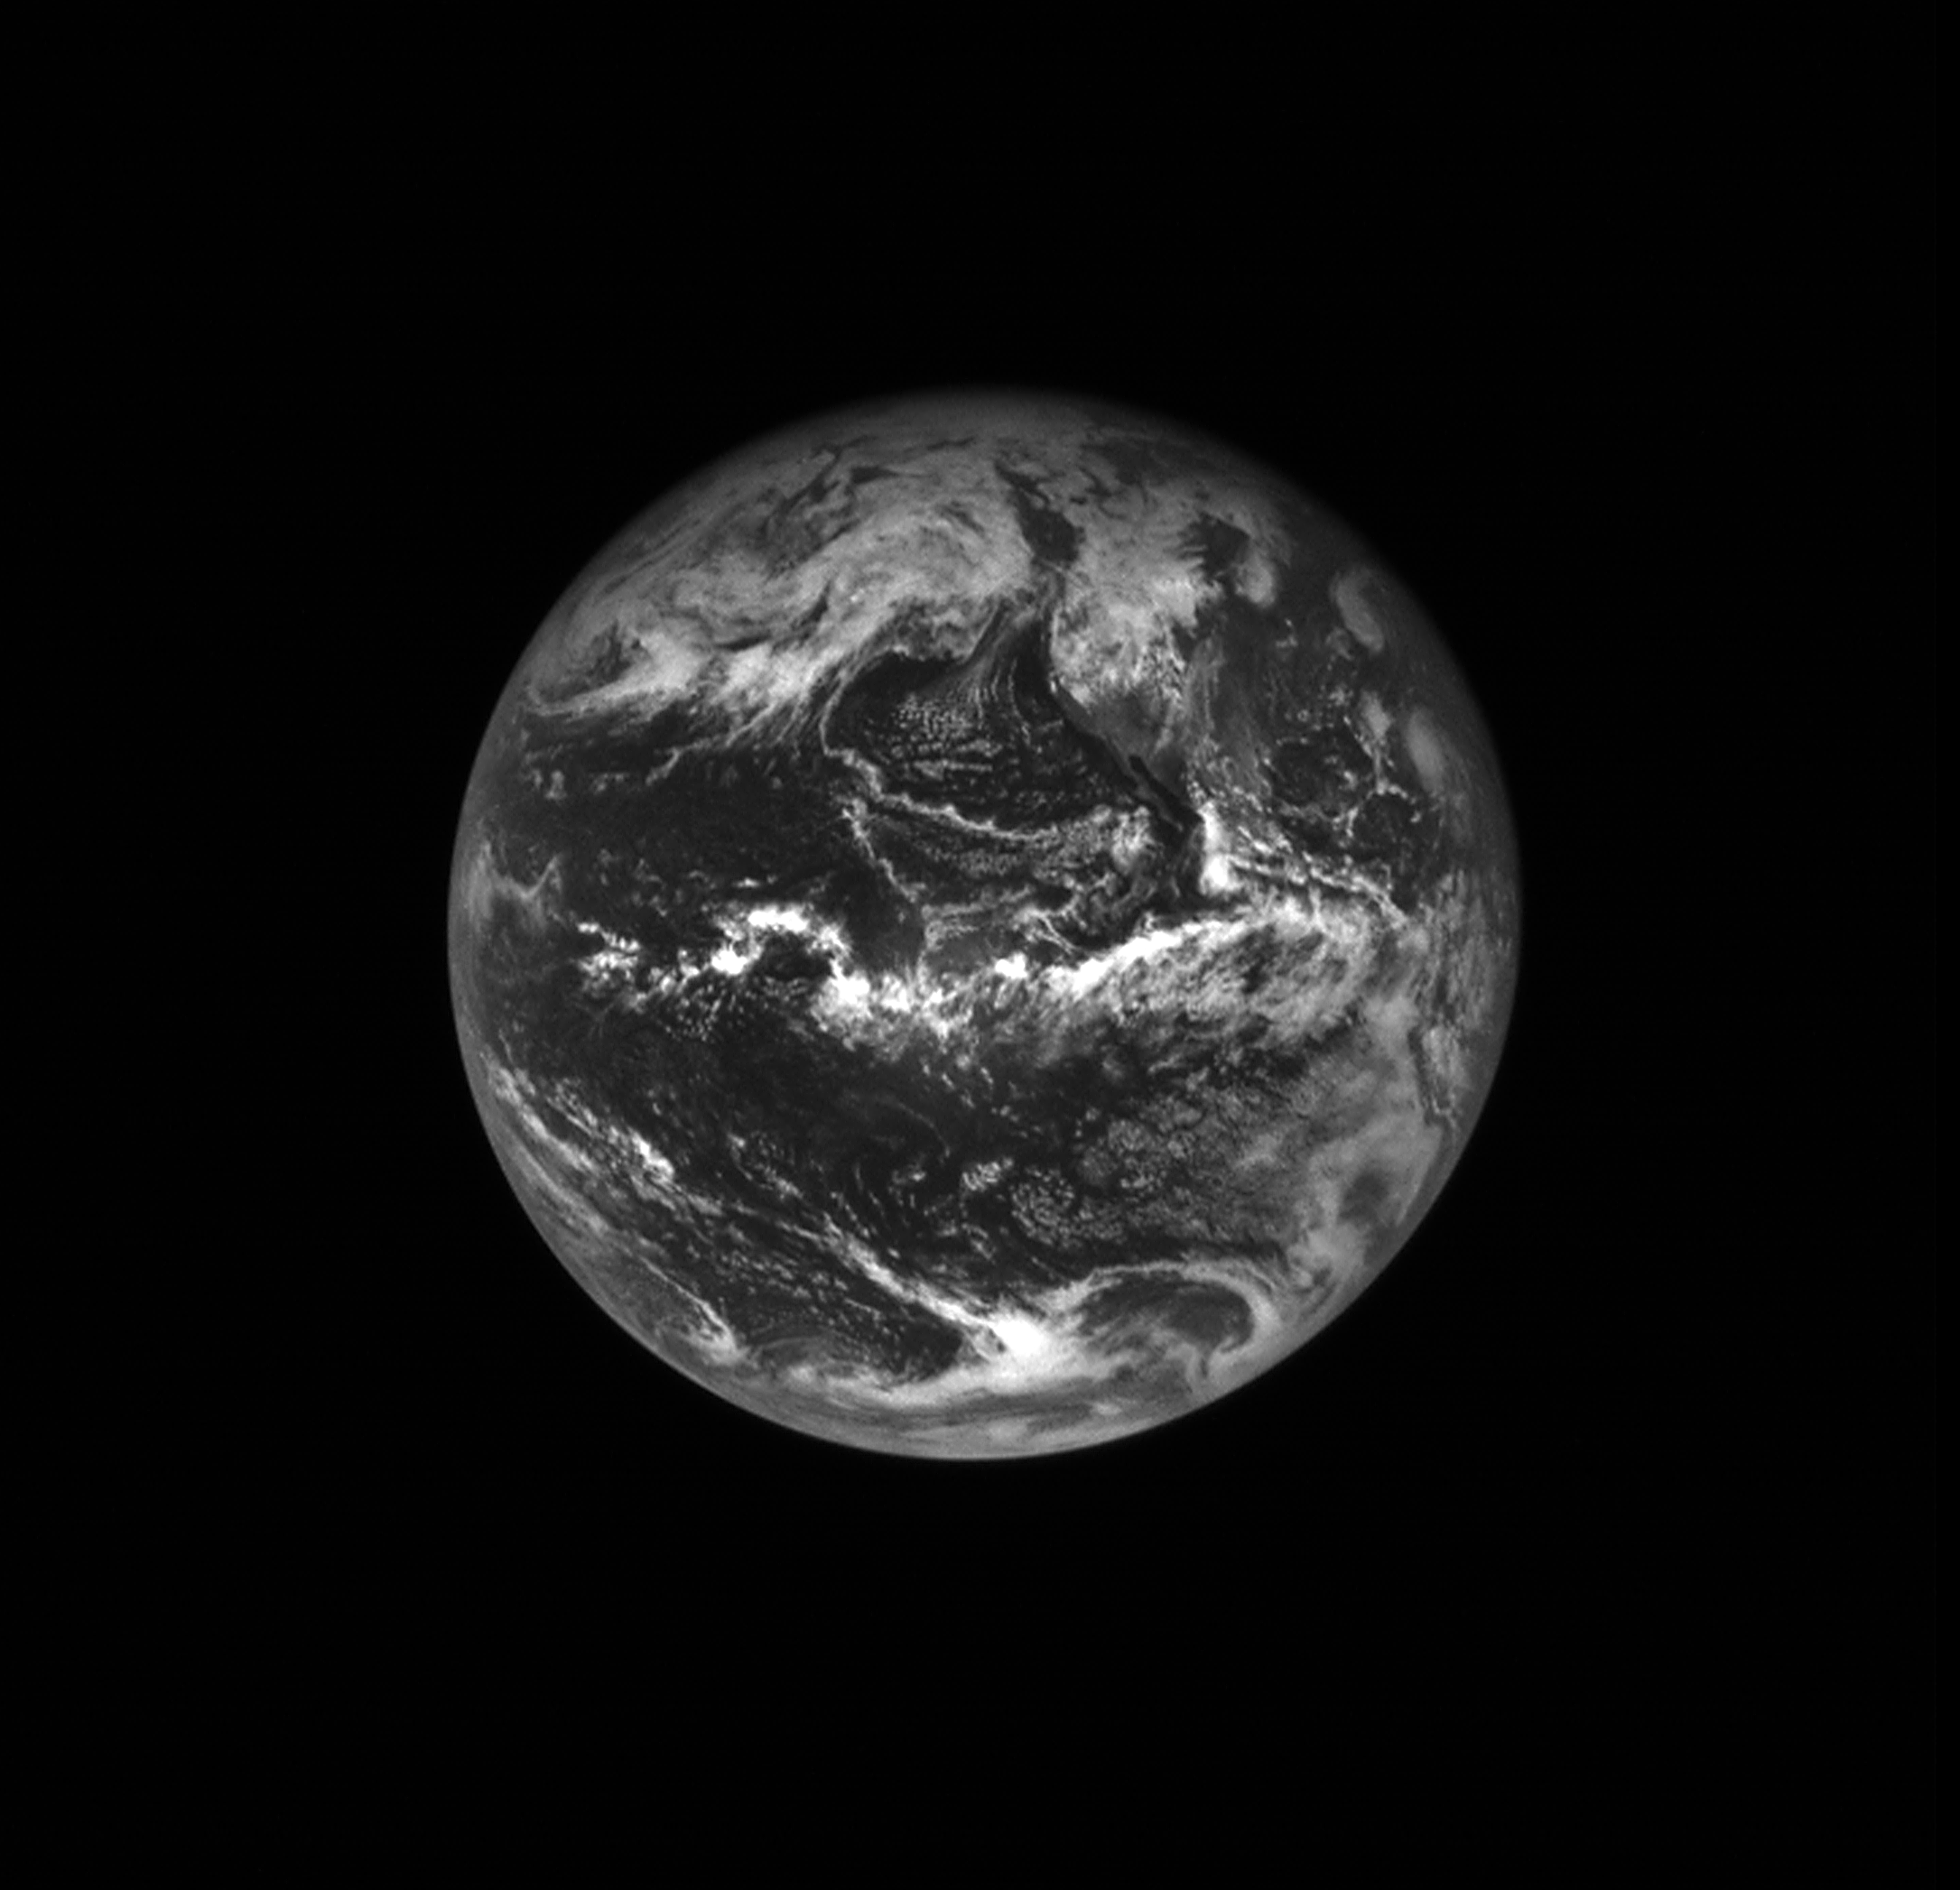 Earth during OSIRIS-REx Earth Gravity Assist maneuver in 2017